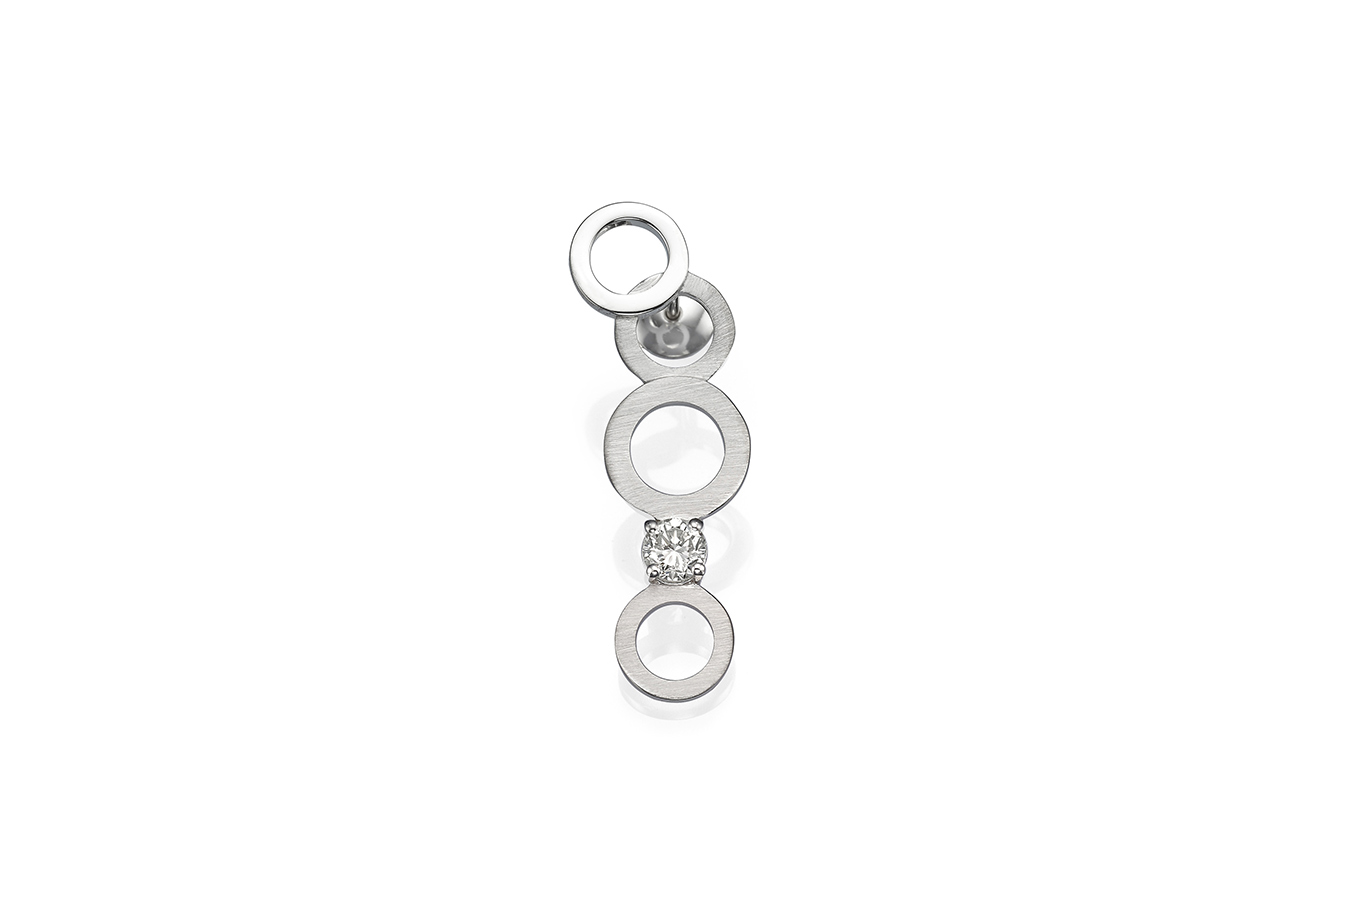 CIRCULAR V EARRING 18K WHITE GOLD 0.30 CT DIAMOND